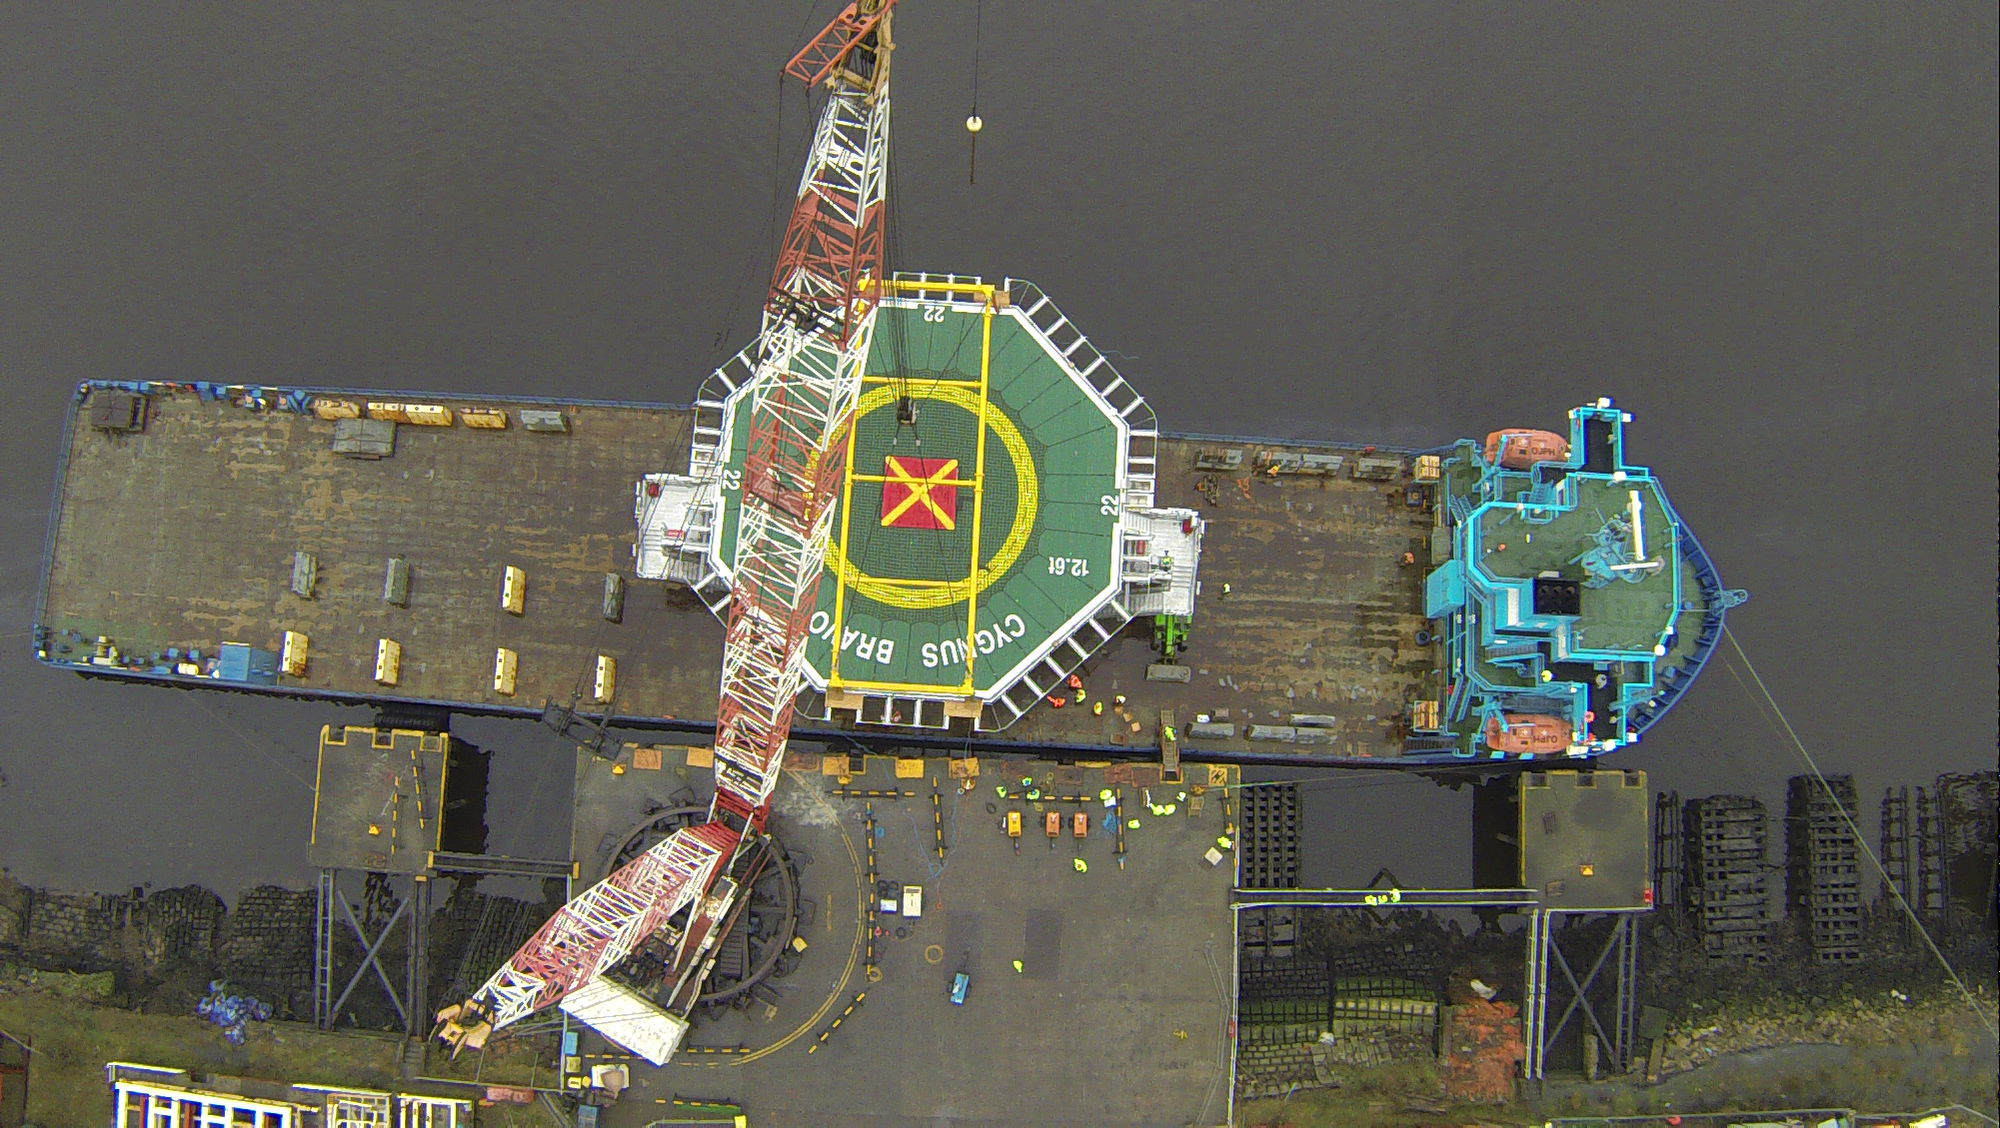 Helipad at port survey - Survey Drones